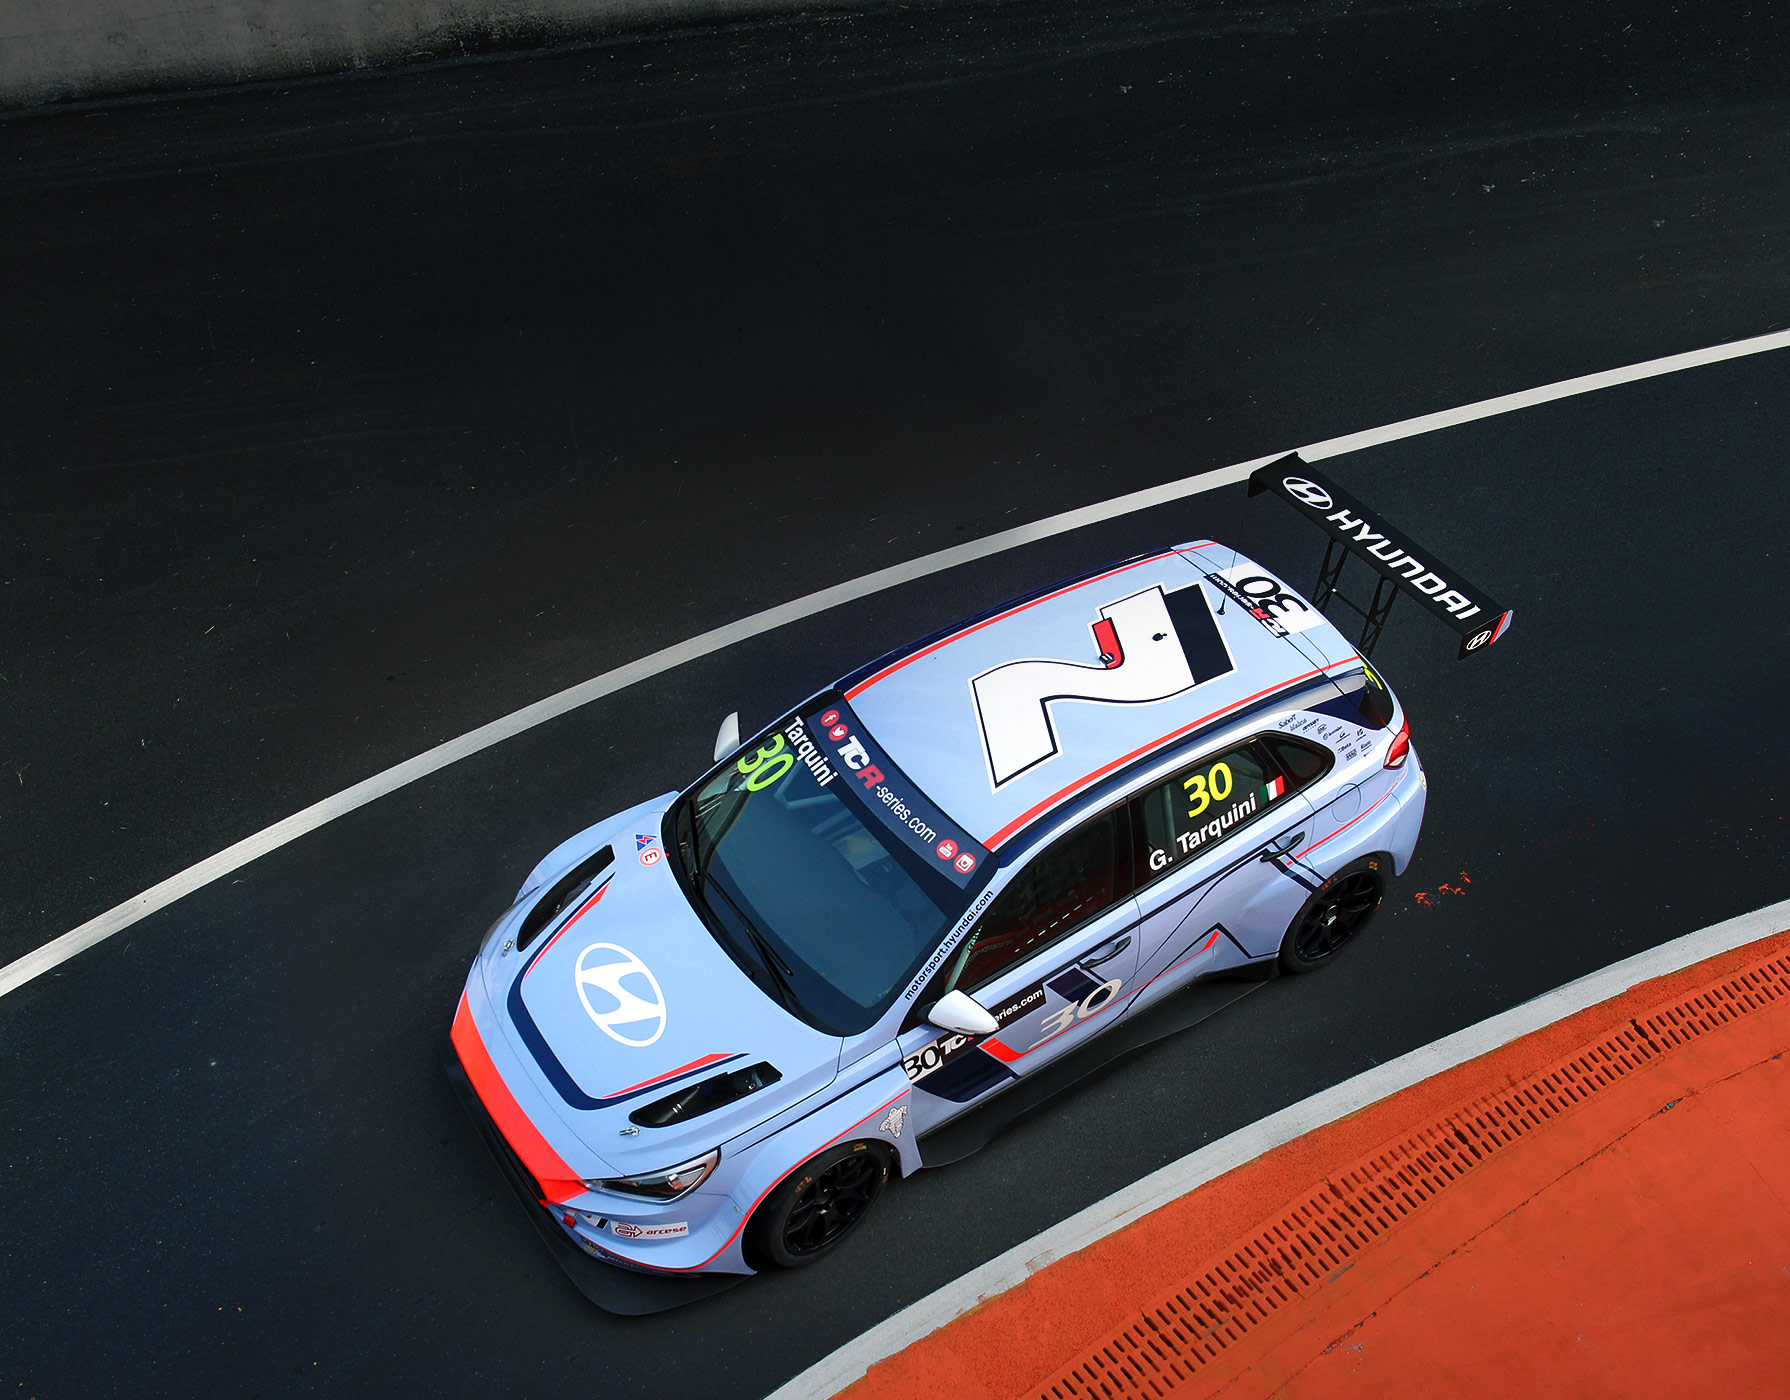 overlook of i30 N TCR is running on racing track